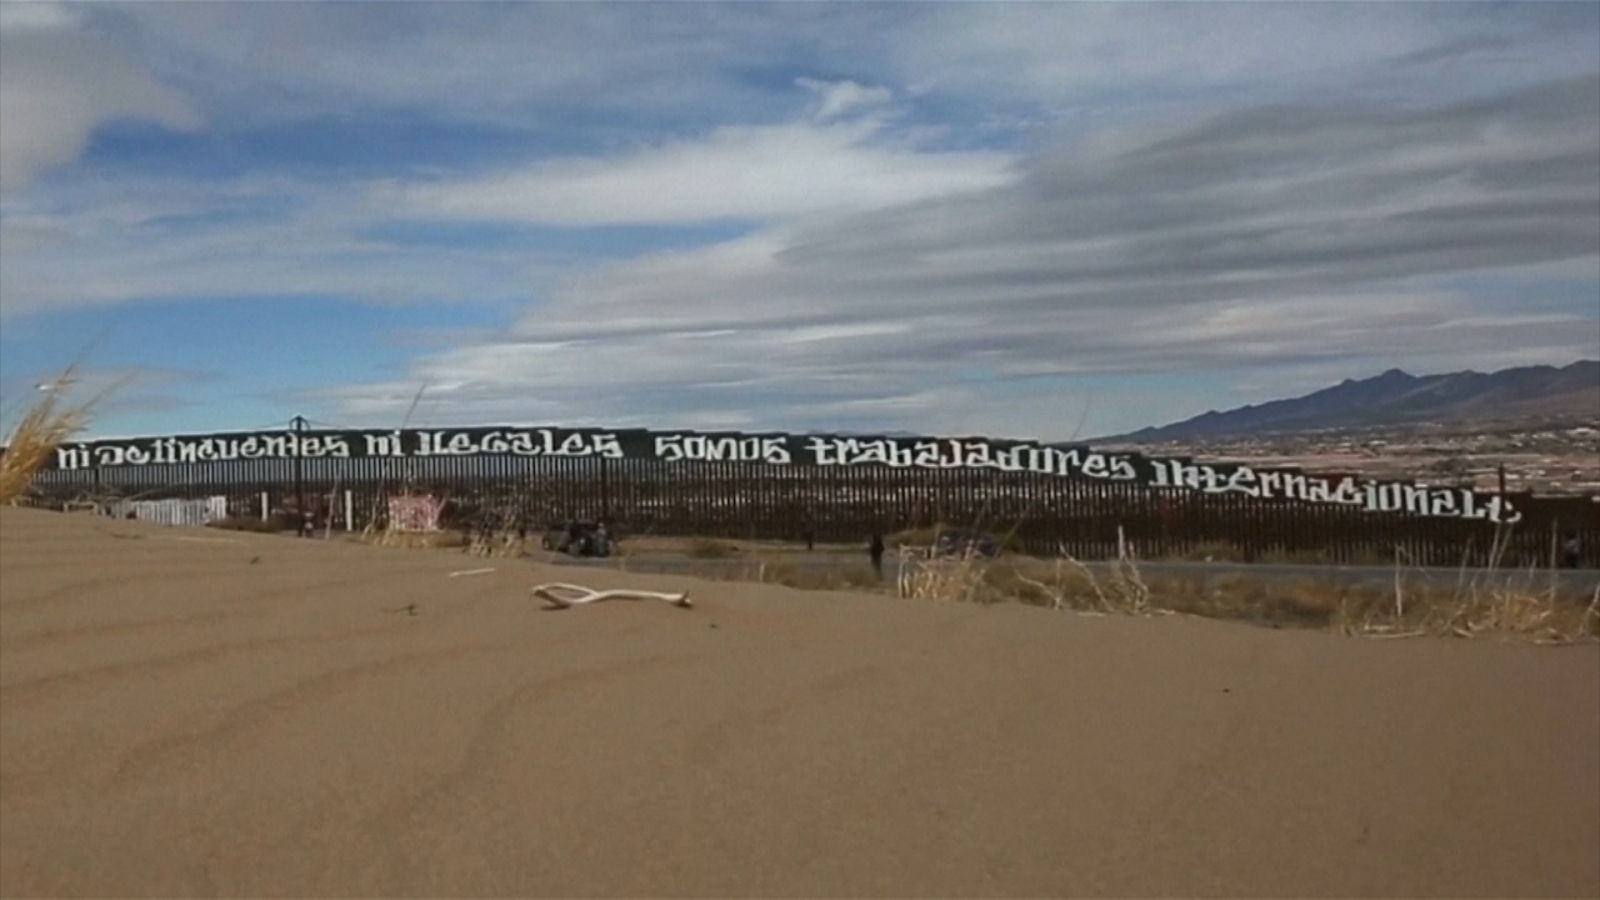 Mexican activists paint giant border wall message for Donald Trump